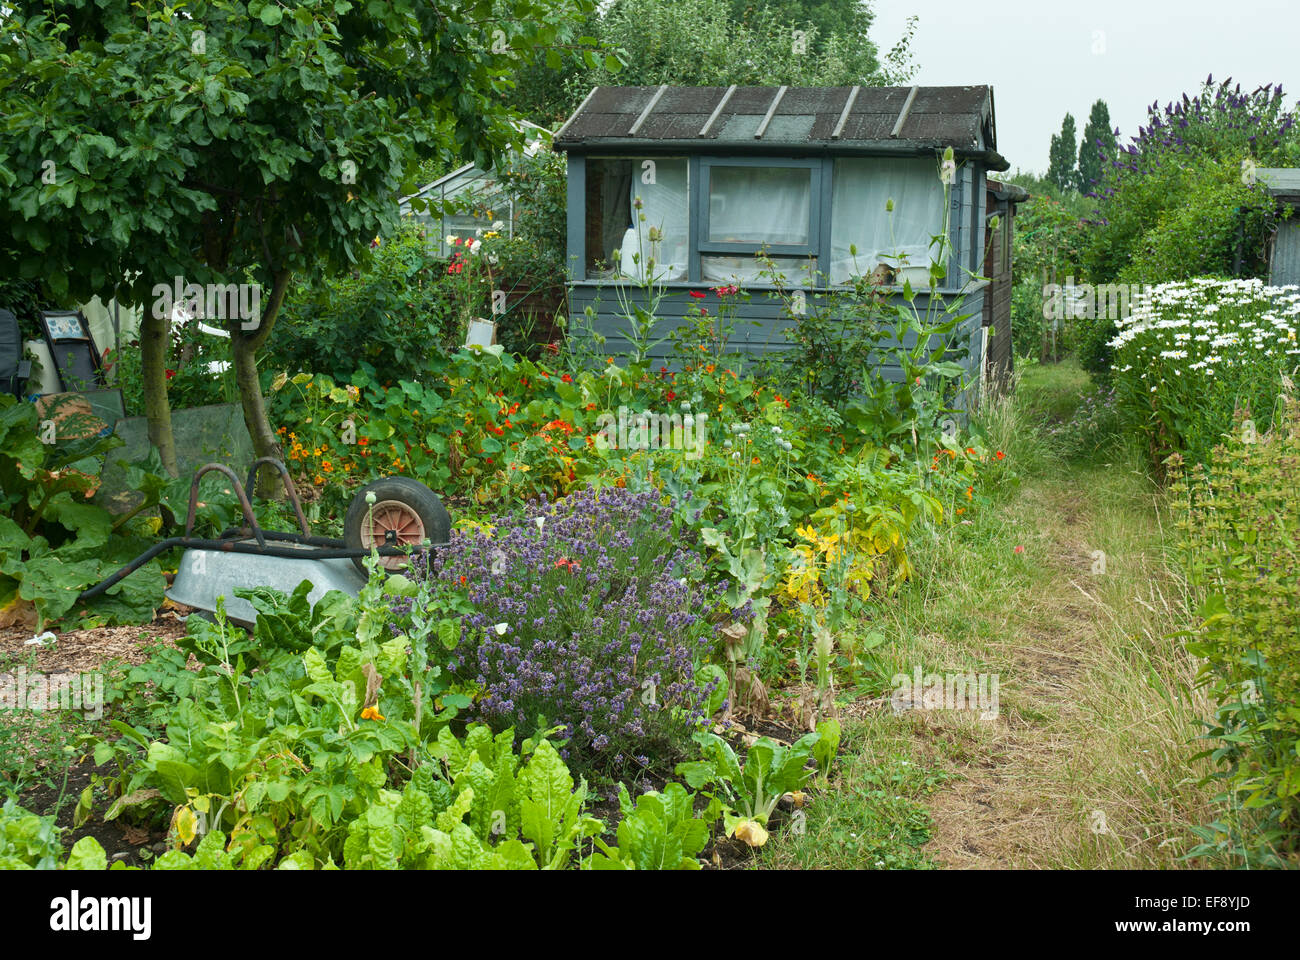 Attractive allotment in summer with shed, vegetables, fruit trees and flowers; chard, marigolds, nasturtiums, michaelmas - Stock Image